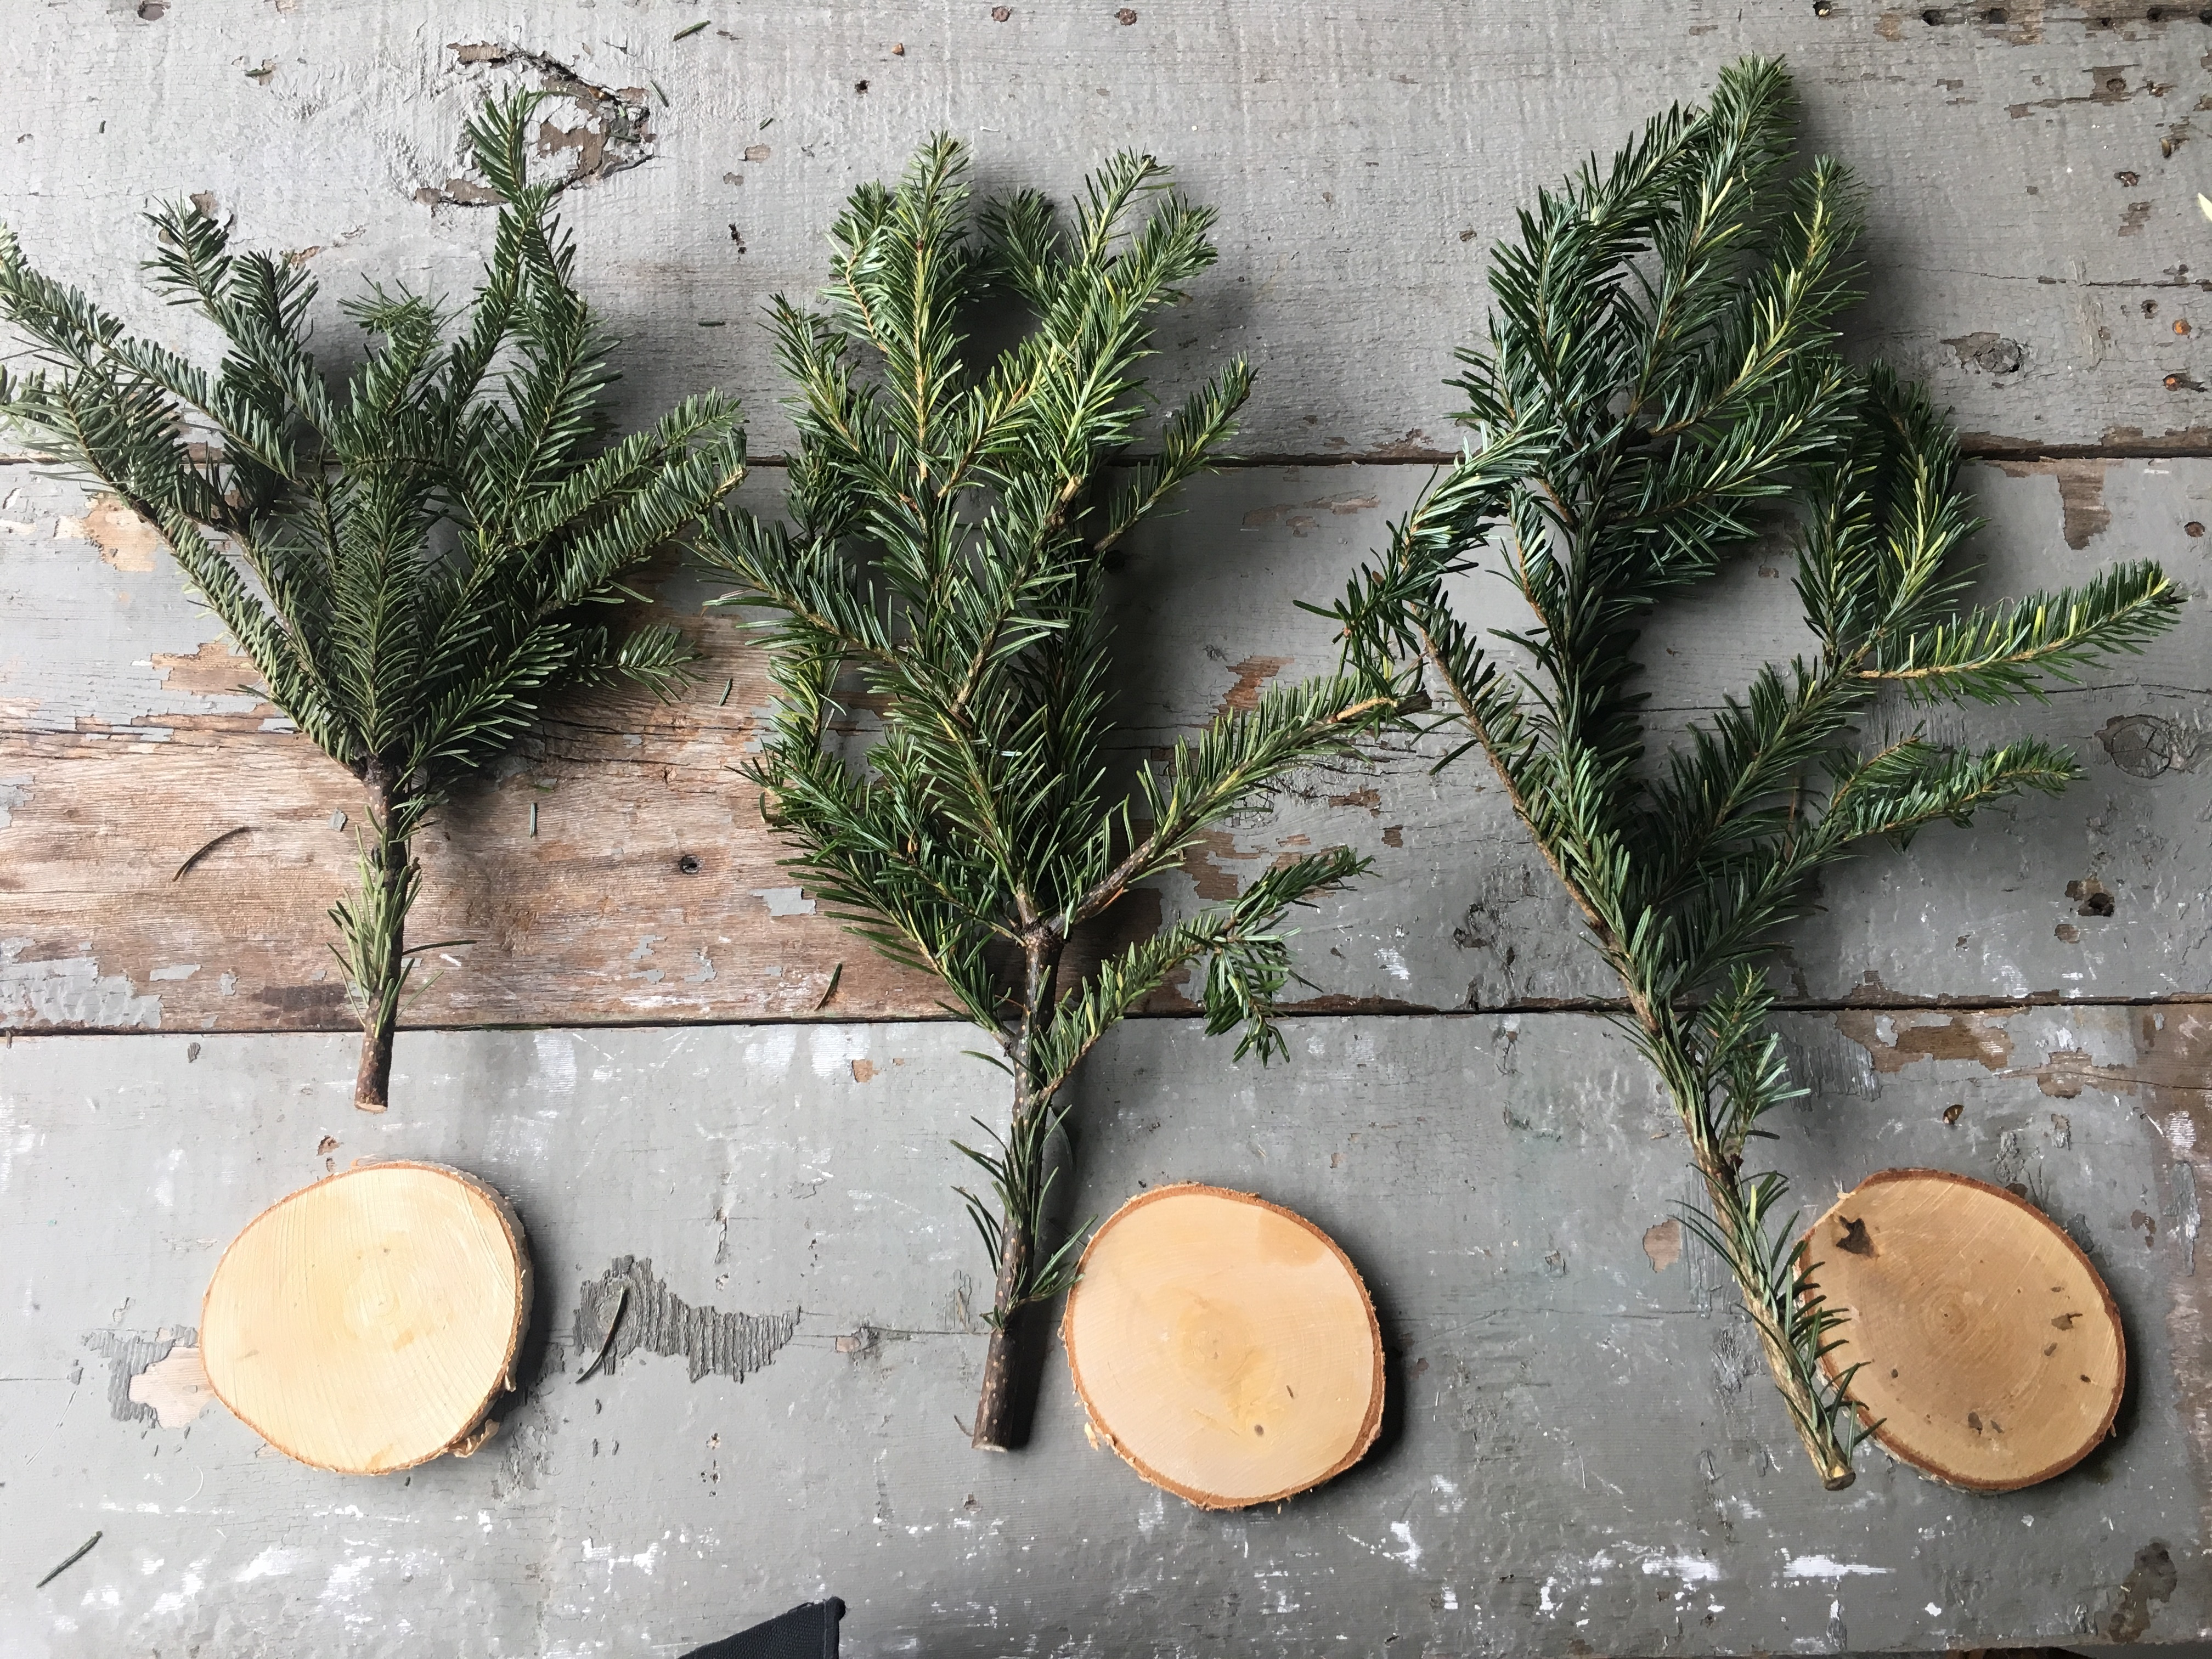 You won't believe how quick and easy it is to make these Christmas trees! I'm sharing the tutorial for not 1, but 3 Christmas tree DIYs!